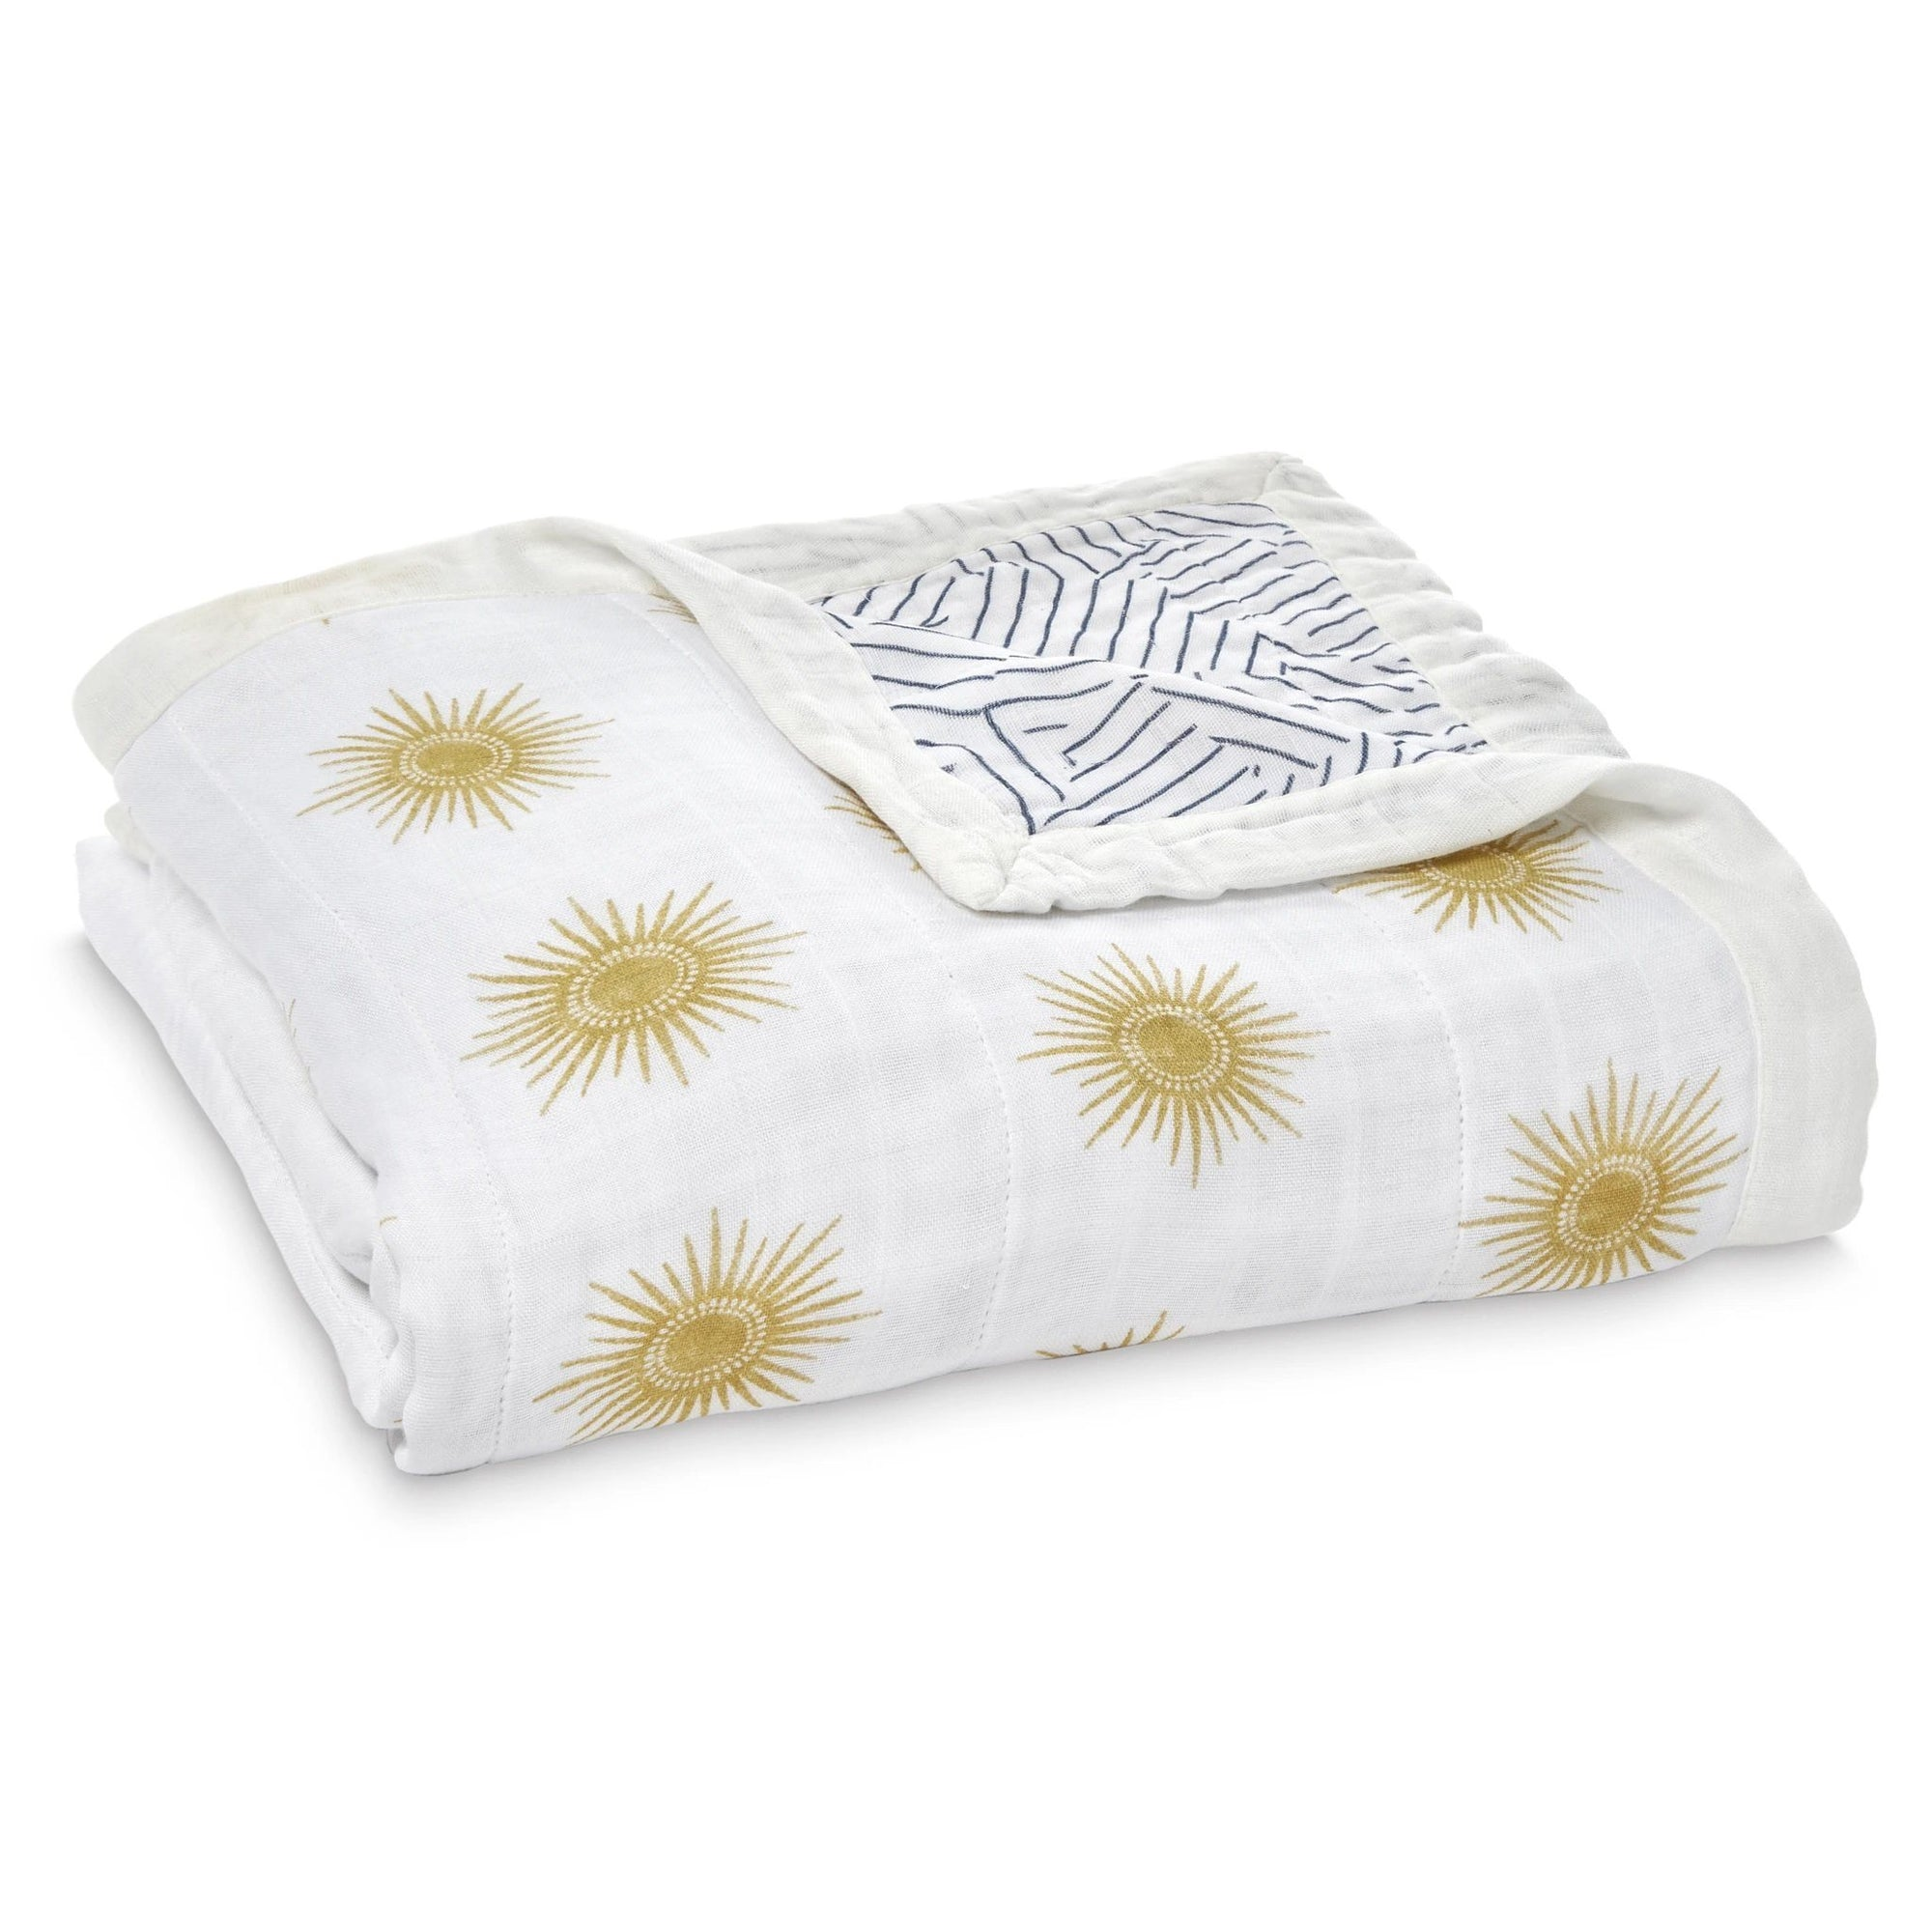 Golden Sun Silky Dream Blanket